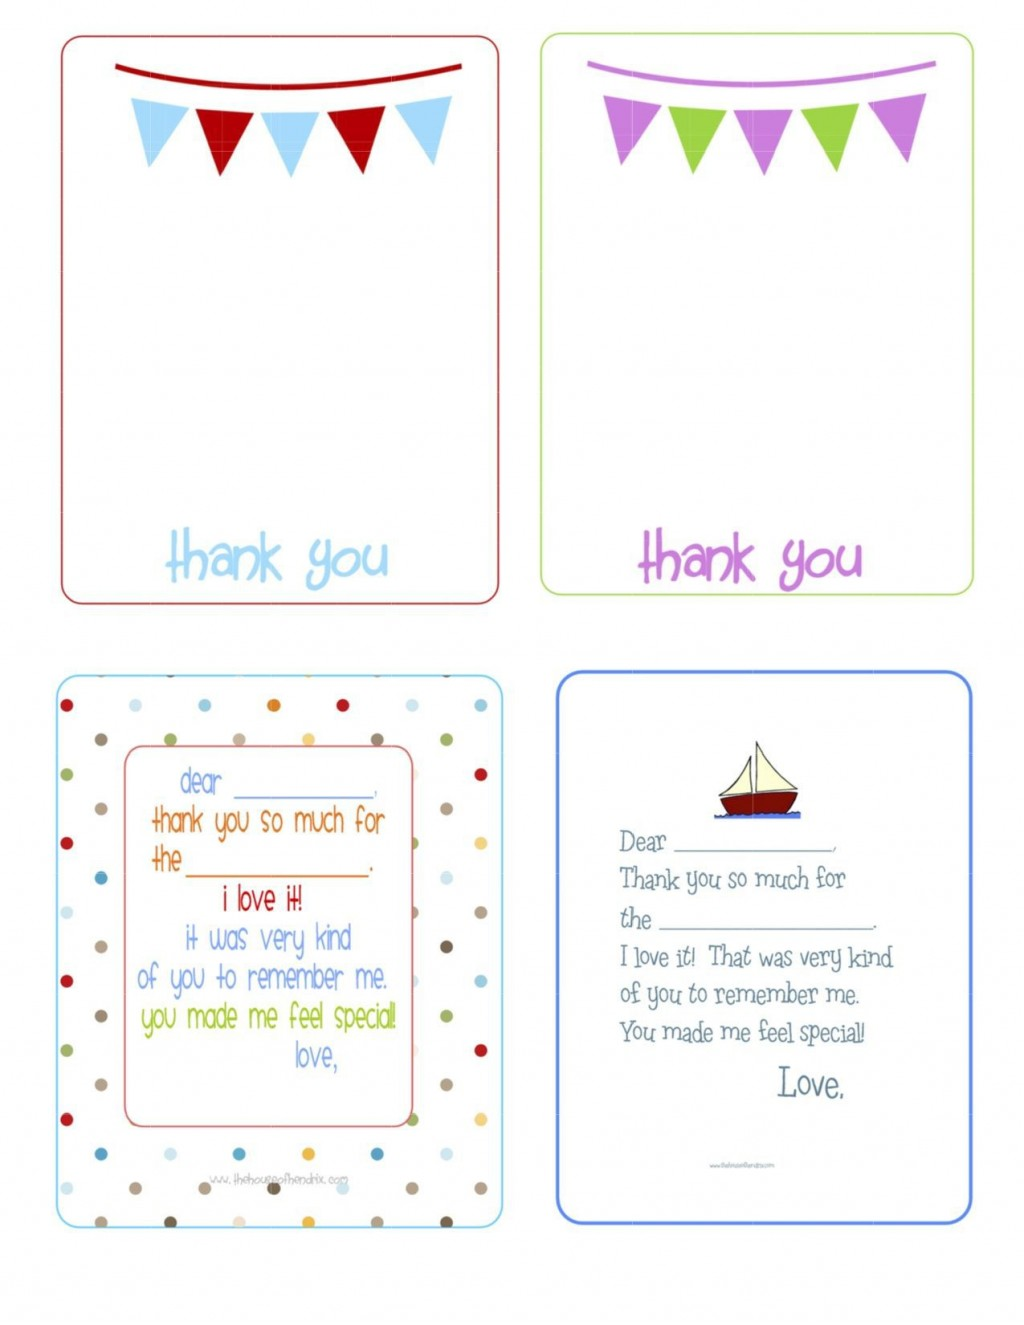 002 Stirring Thank You Note Template Printable Inspiration  Letter Baby Card WordLarge